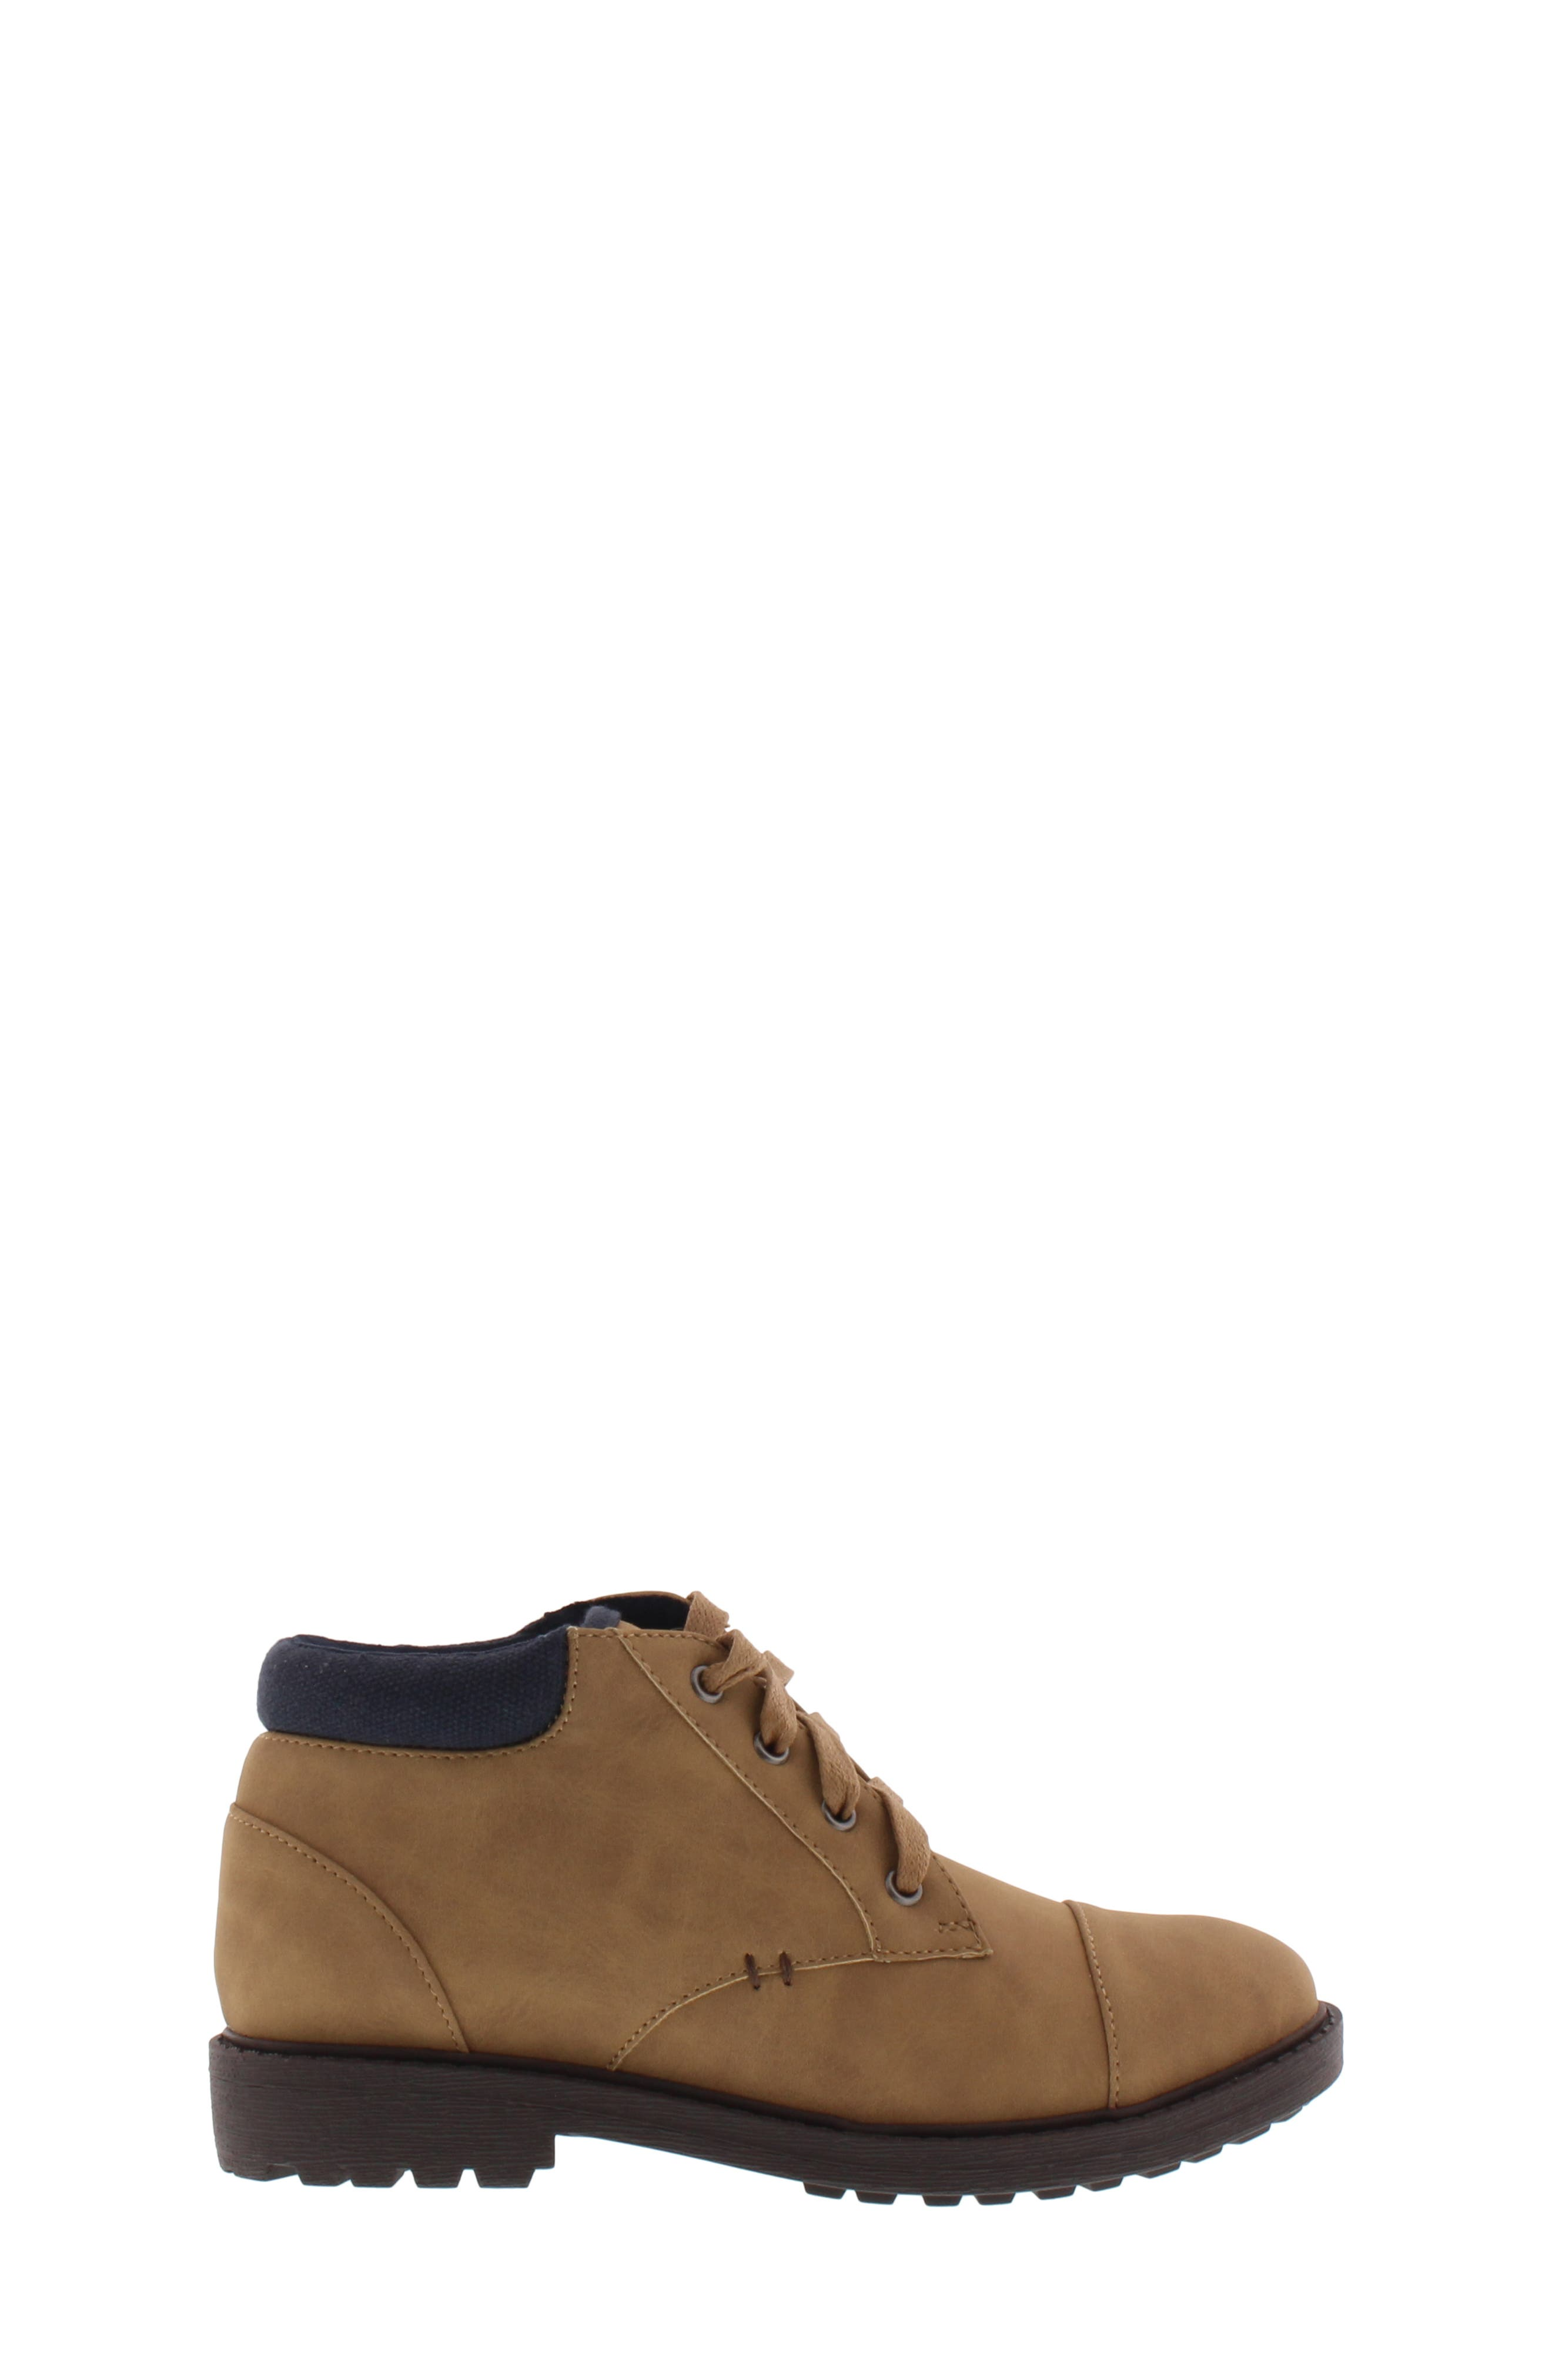 Reaction Kenneth Cole Chase Myles Boot,                             Alternate thumbnail 3, color,                             TAN